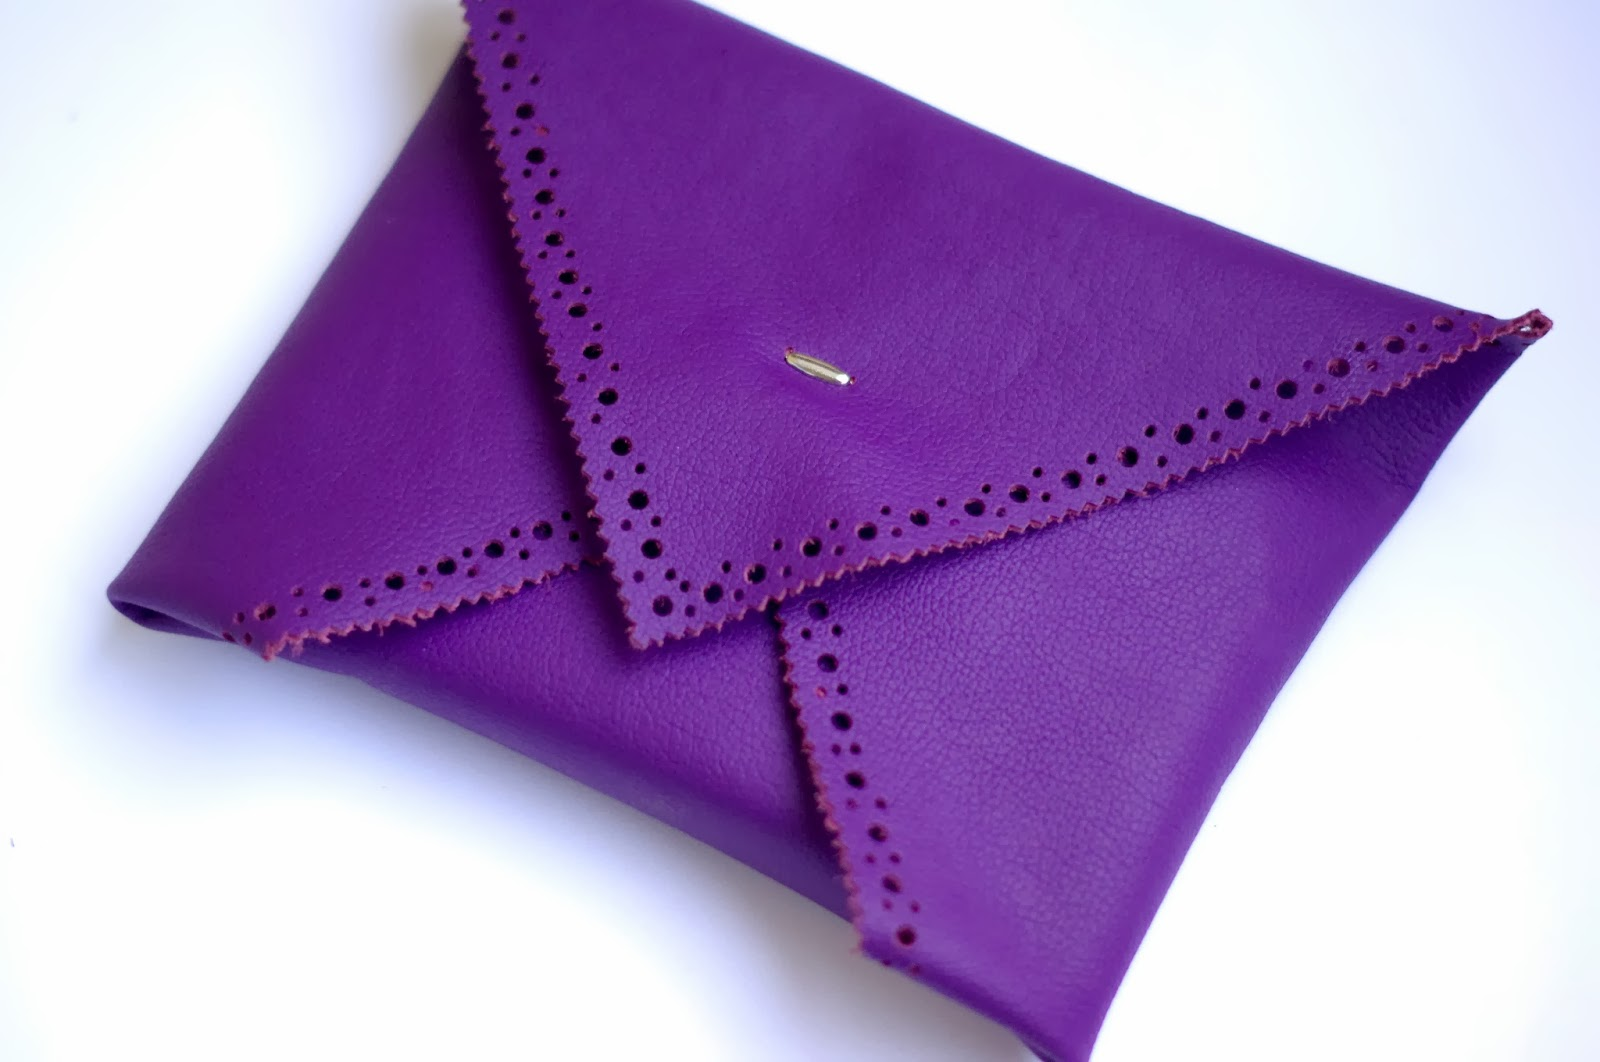 How to make an Origami envelope clutch without sewing machine. Fashion tutorial designed by Xenia Kuhn for fashion blog www.fashionrolla.com